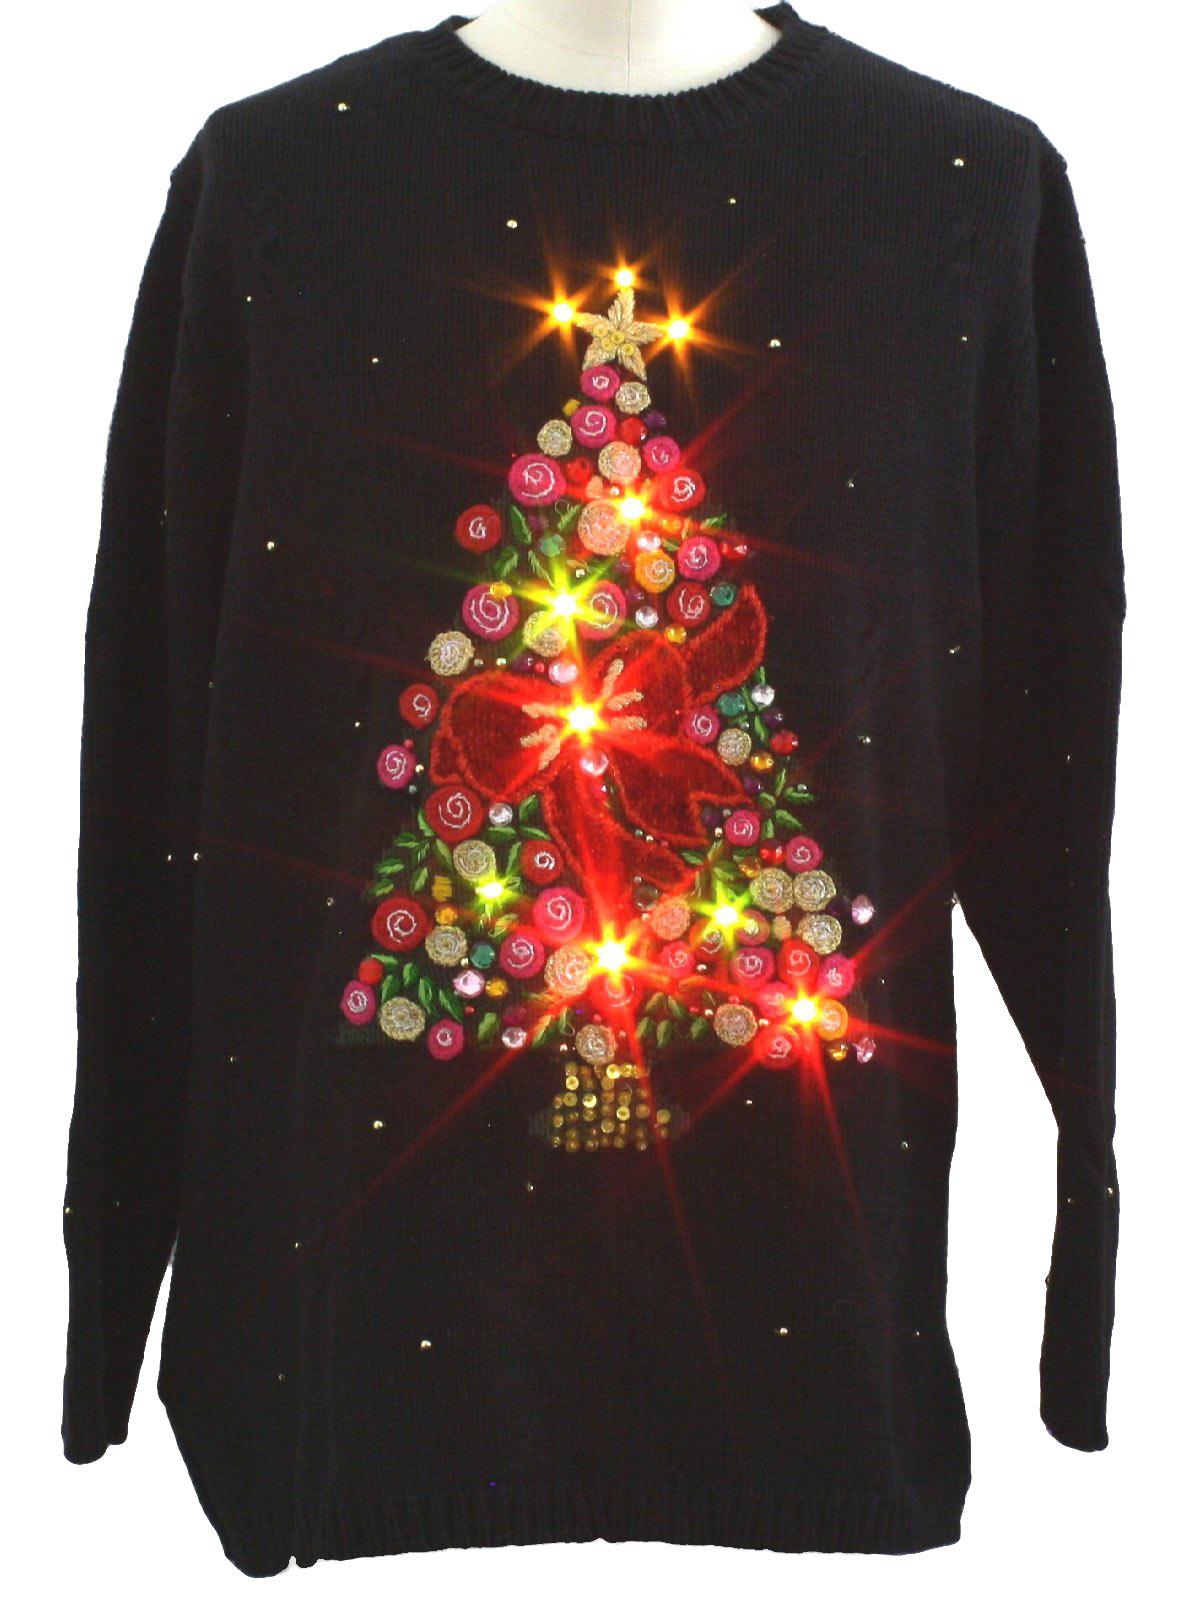 Christopher Radko Unisex Lightup Ugly Christmas Sweater $84.00 Not in stock. Item No. 236195